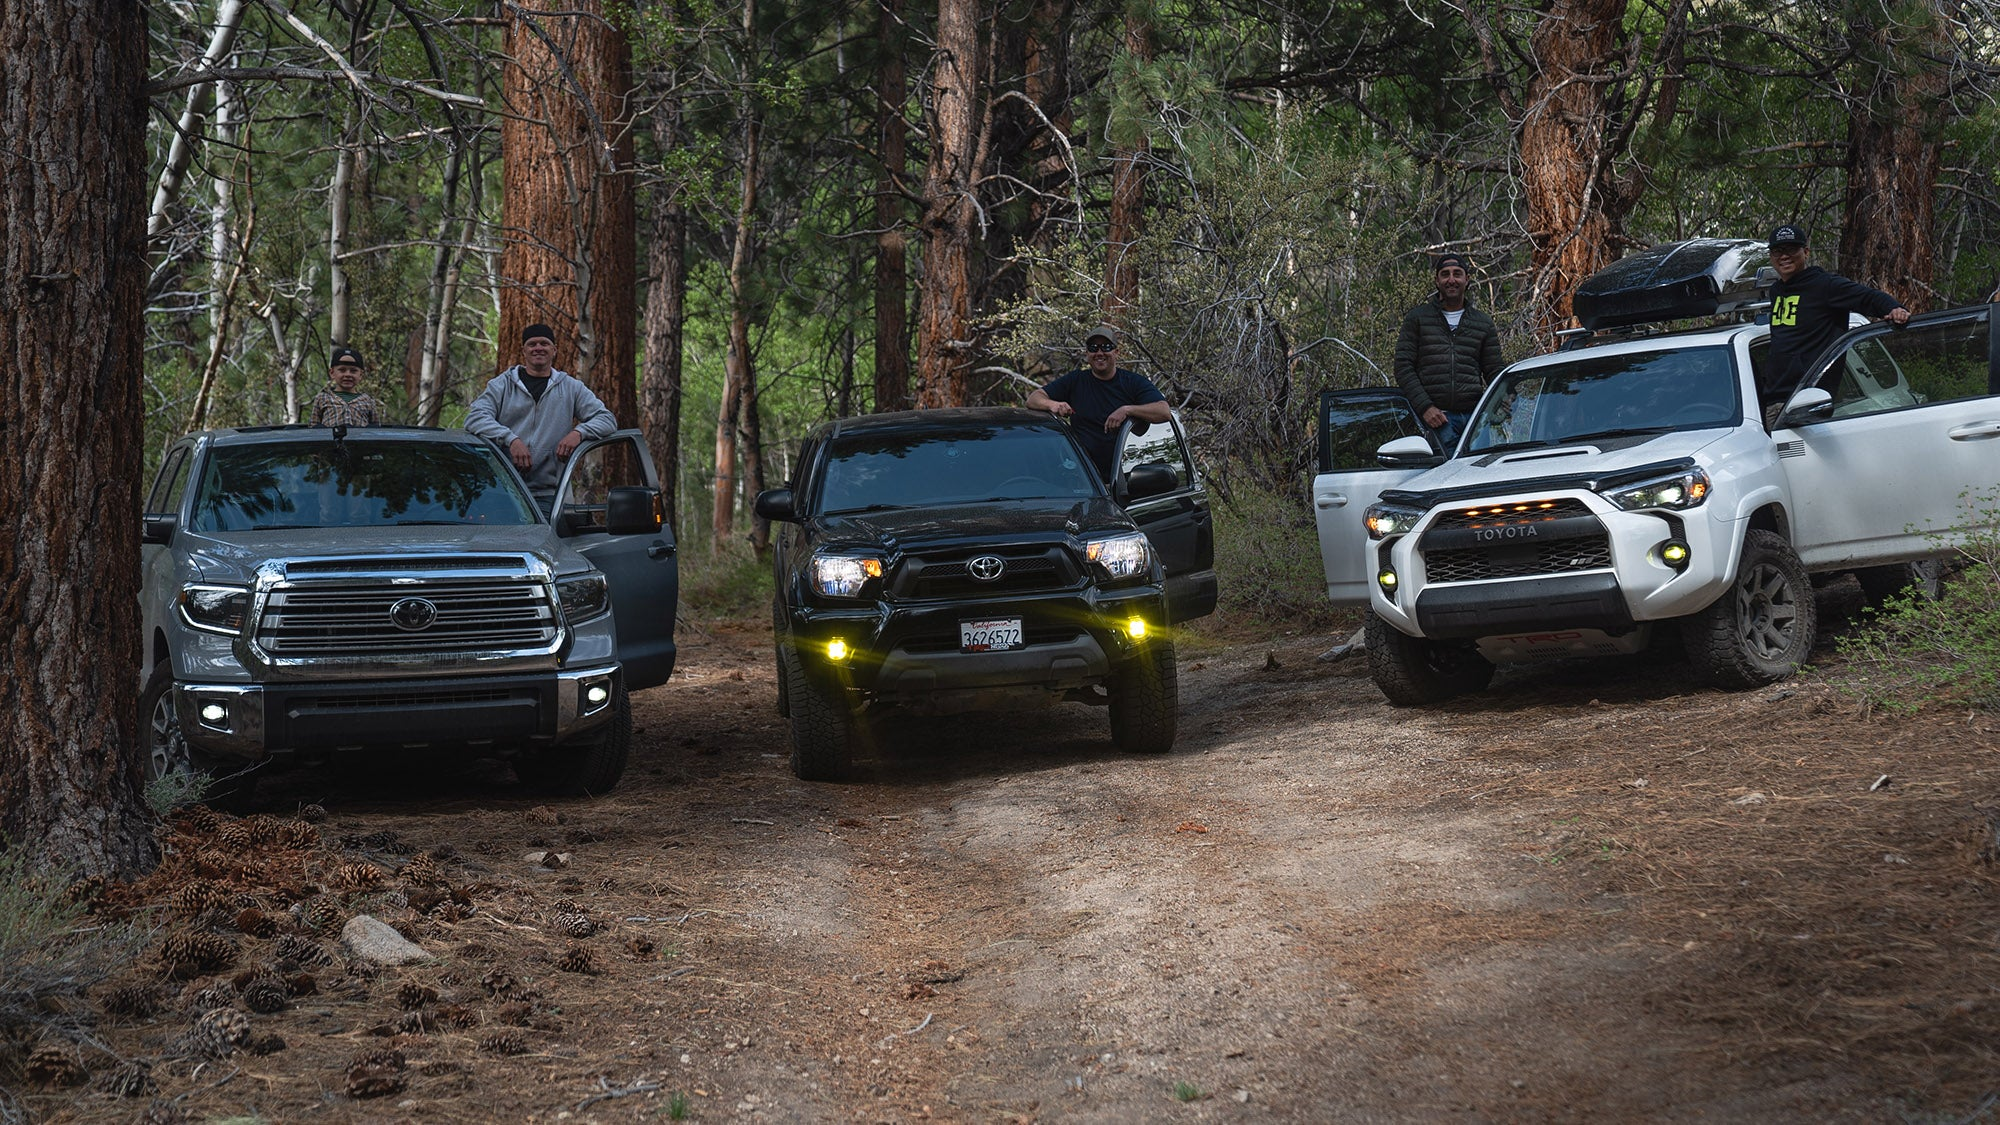 3 Toyota trucks ready to off road